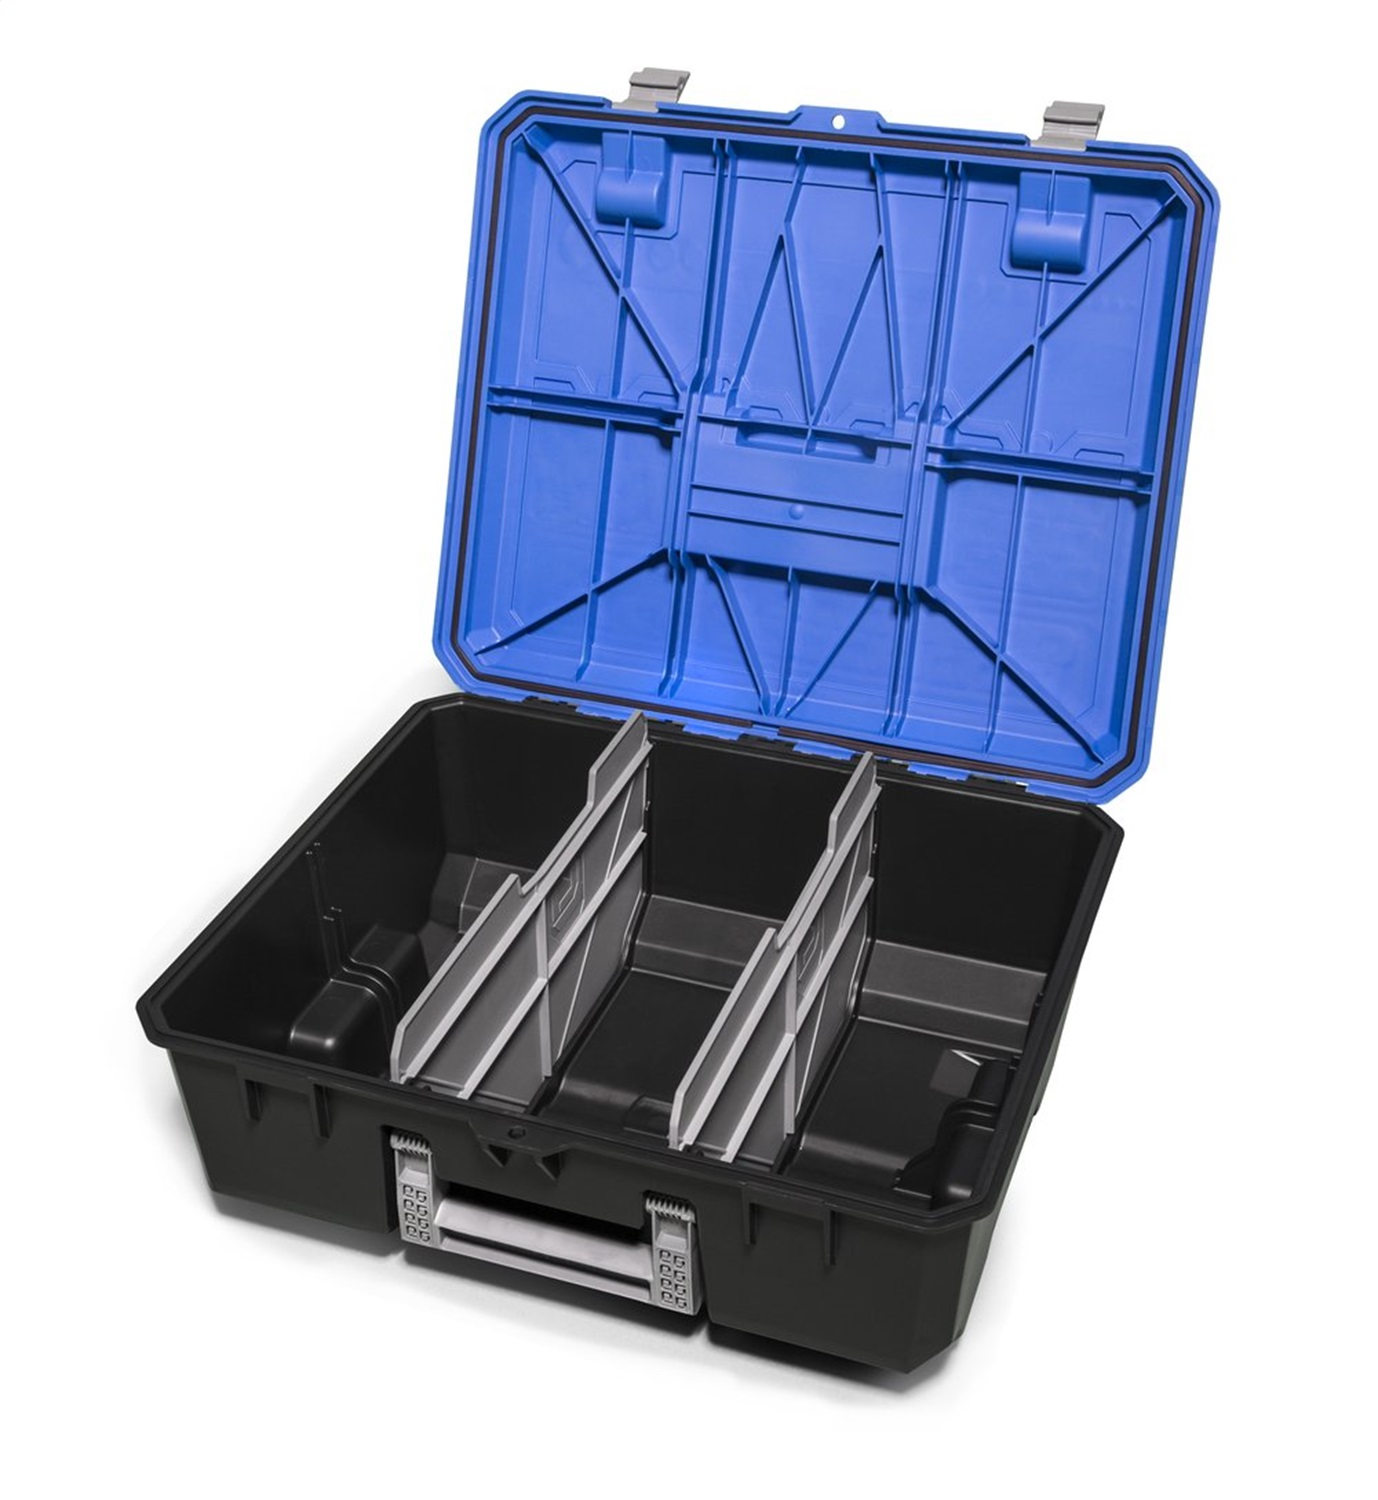 D-Box Drawer Tool Box, Includes Recessed Locking Levers/EPDM Gasket/2 Removable Dividers/2 Grip Points/Horizontal And Vertical Carry Handles/Ruler And Common Bolt/Fit Guide